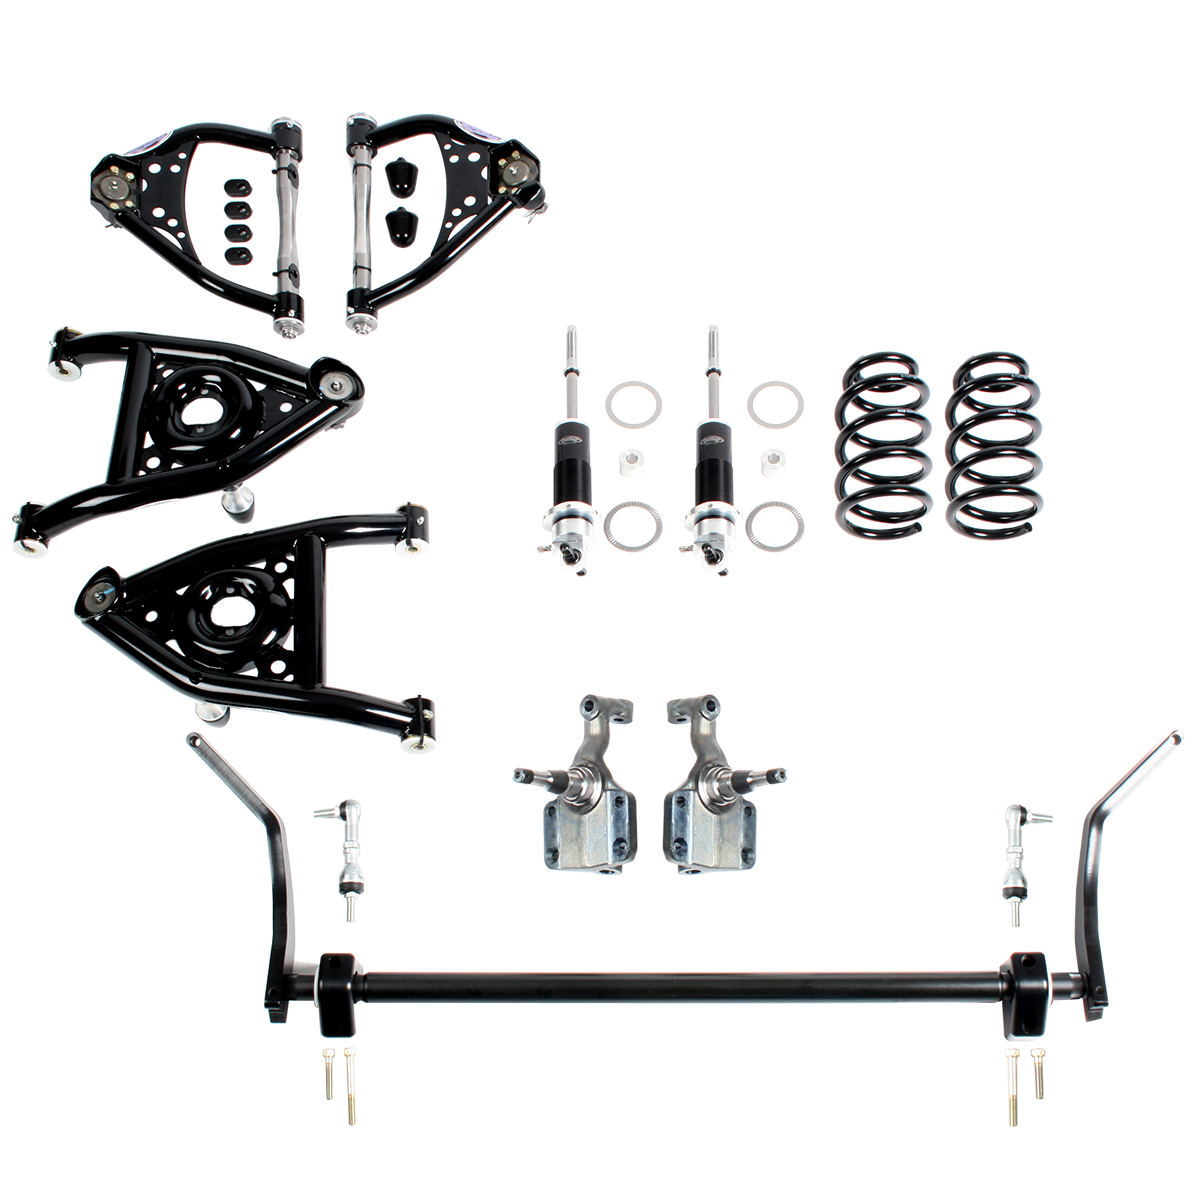 Detroit Speed  Speed Kit 2 Front Suspension Kit with Splined Sway Bar Double Adjustable Shocks w/Remote Canister 1967 A-Body BBC